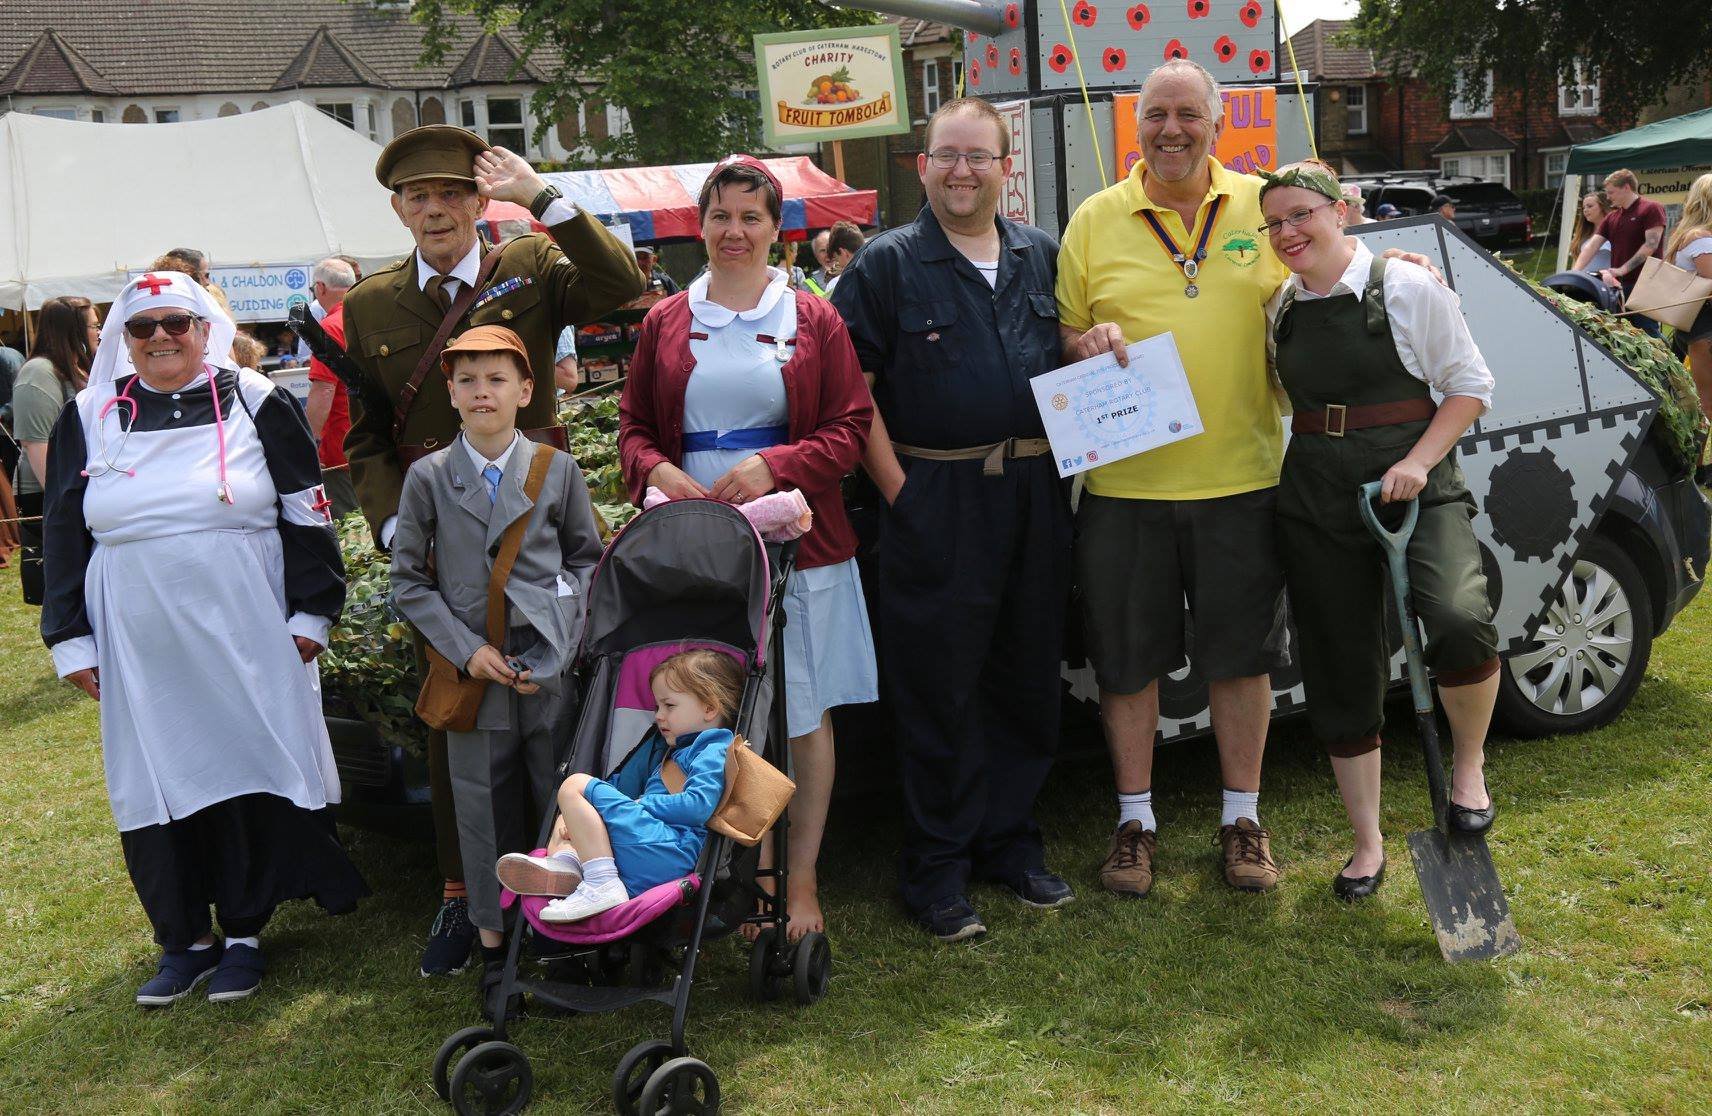 """Caterham Rotary President Andy Parr presenting 1st prize to the local residents with their """"Those not forgotten"""" float."""